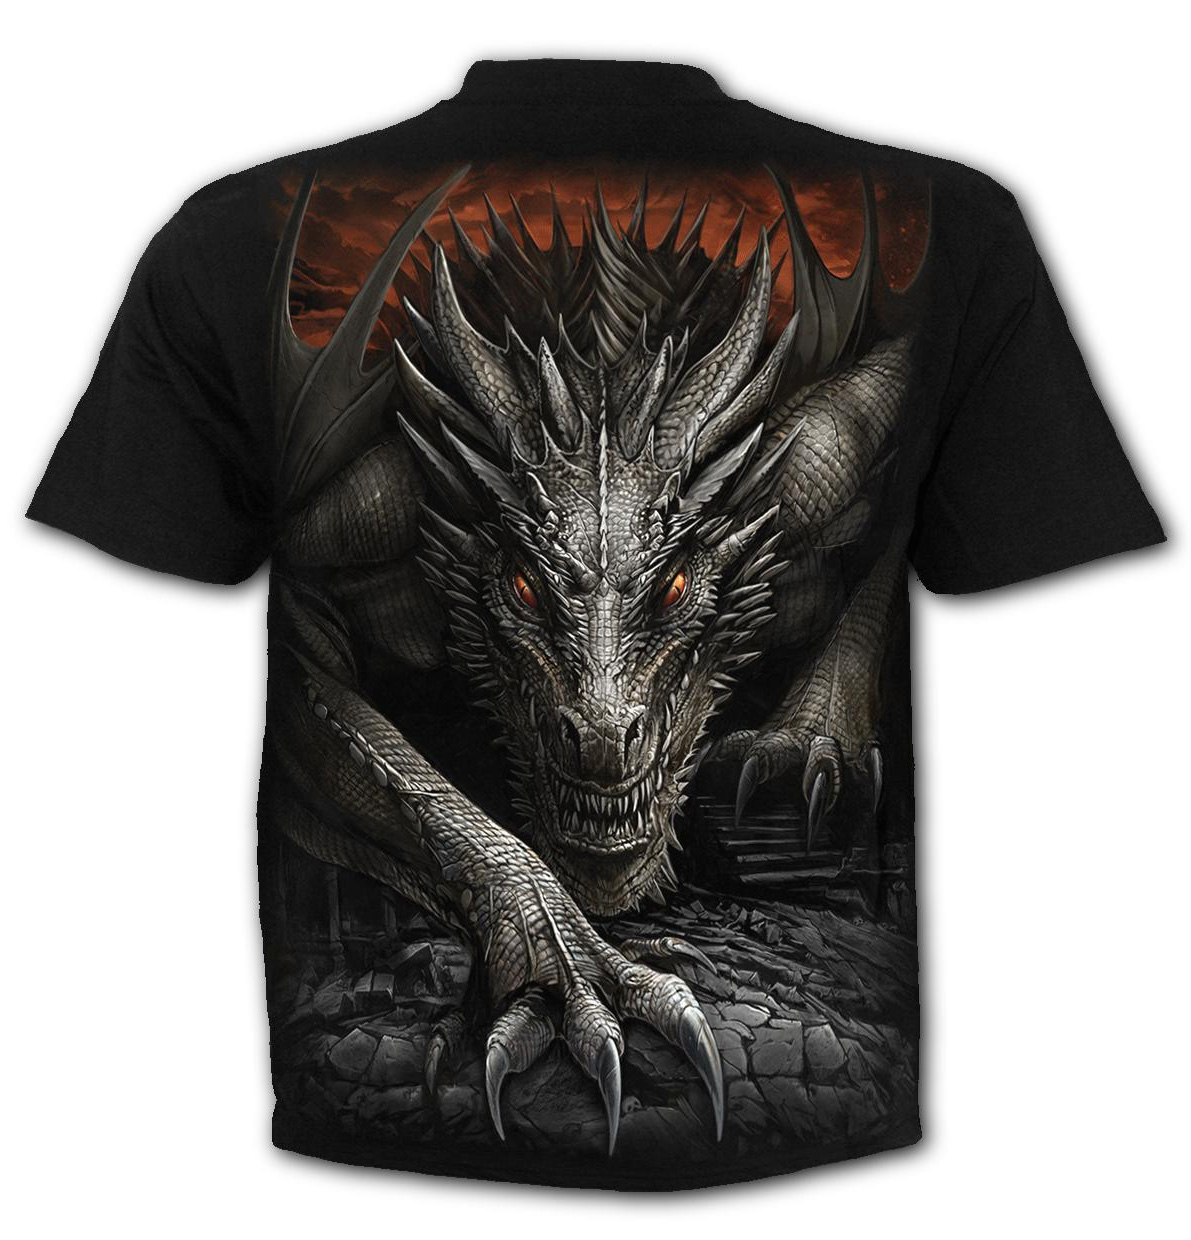 SPIRAL-Direct-Unisex-T-Shirt-Biker-Goth-MAJESTIC-DRACO-Dragon-All-Sizes thumbnail 17